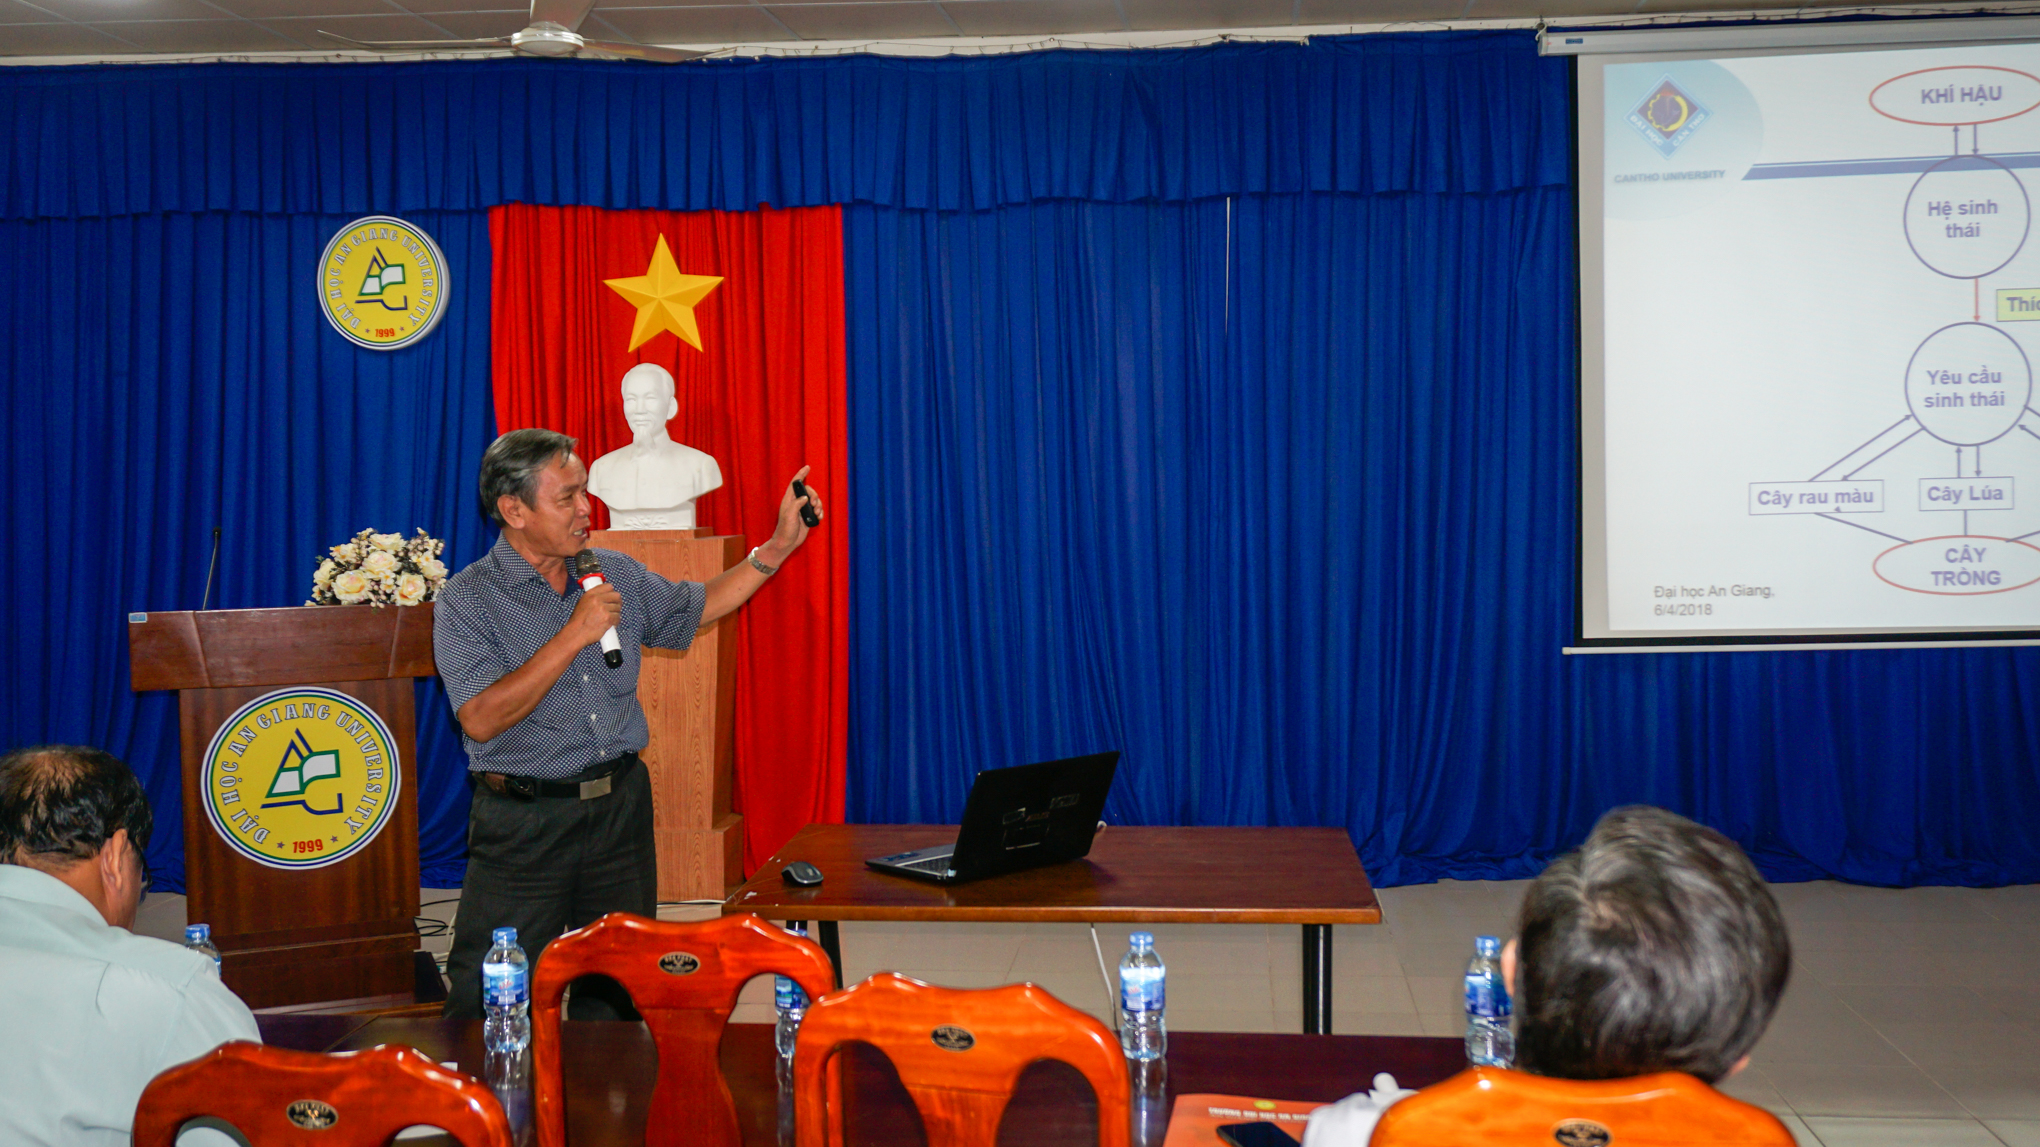 The presentation of Assoc. Prof. Dr. Nguyen Ngoc De – Vice Dean of the Faculty of Rural Development, Can Tho University